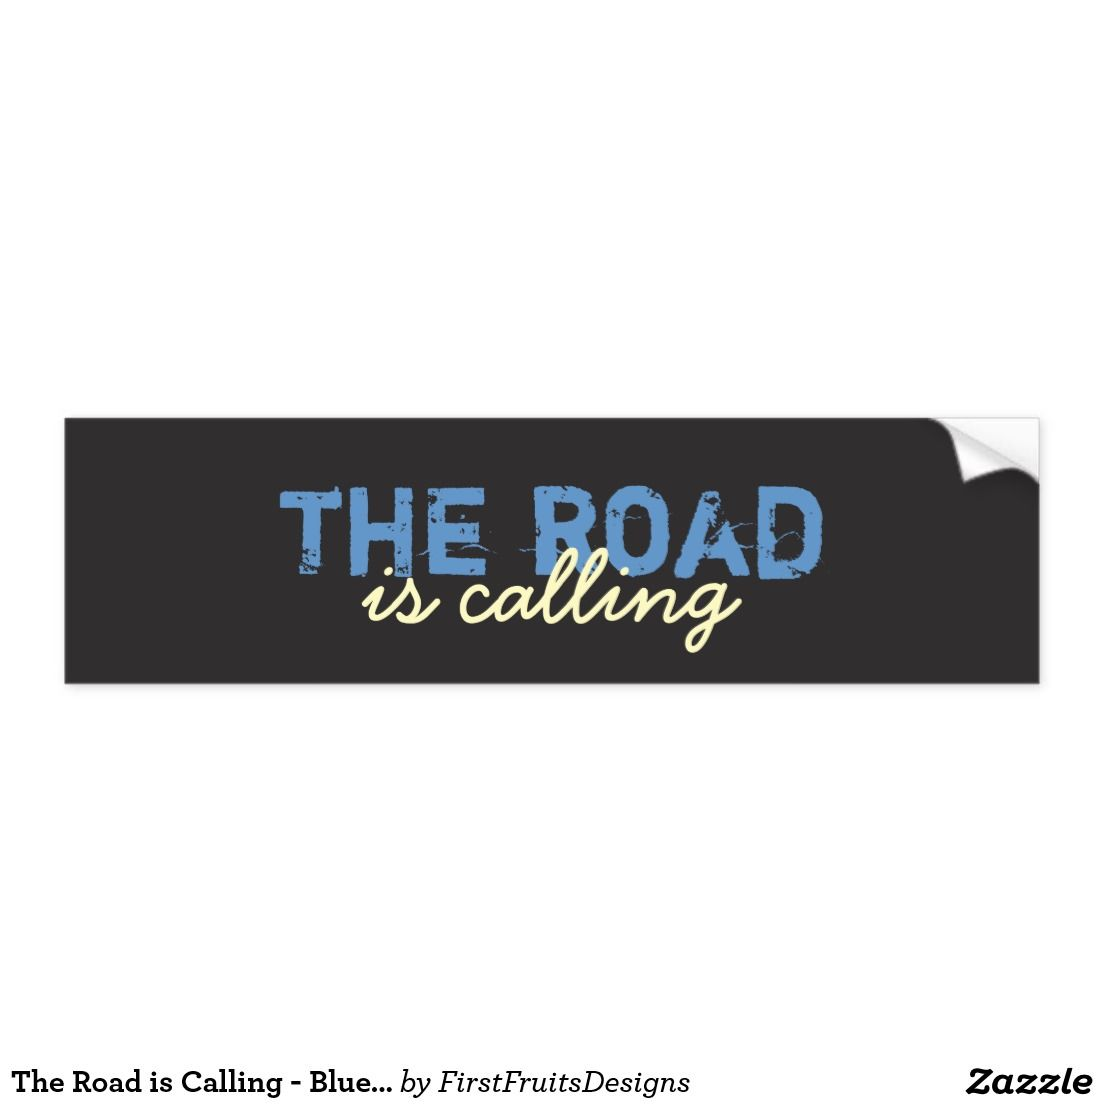 The Road is Calling - Blue & Yellow on Gray Grunge Bumper Sticker